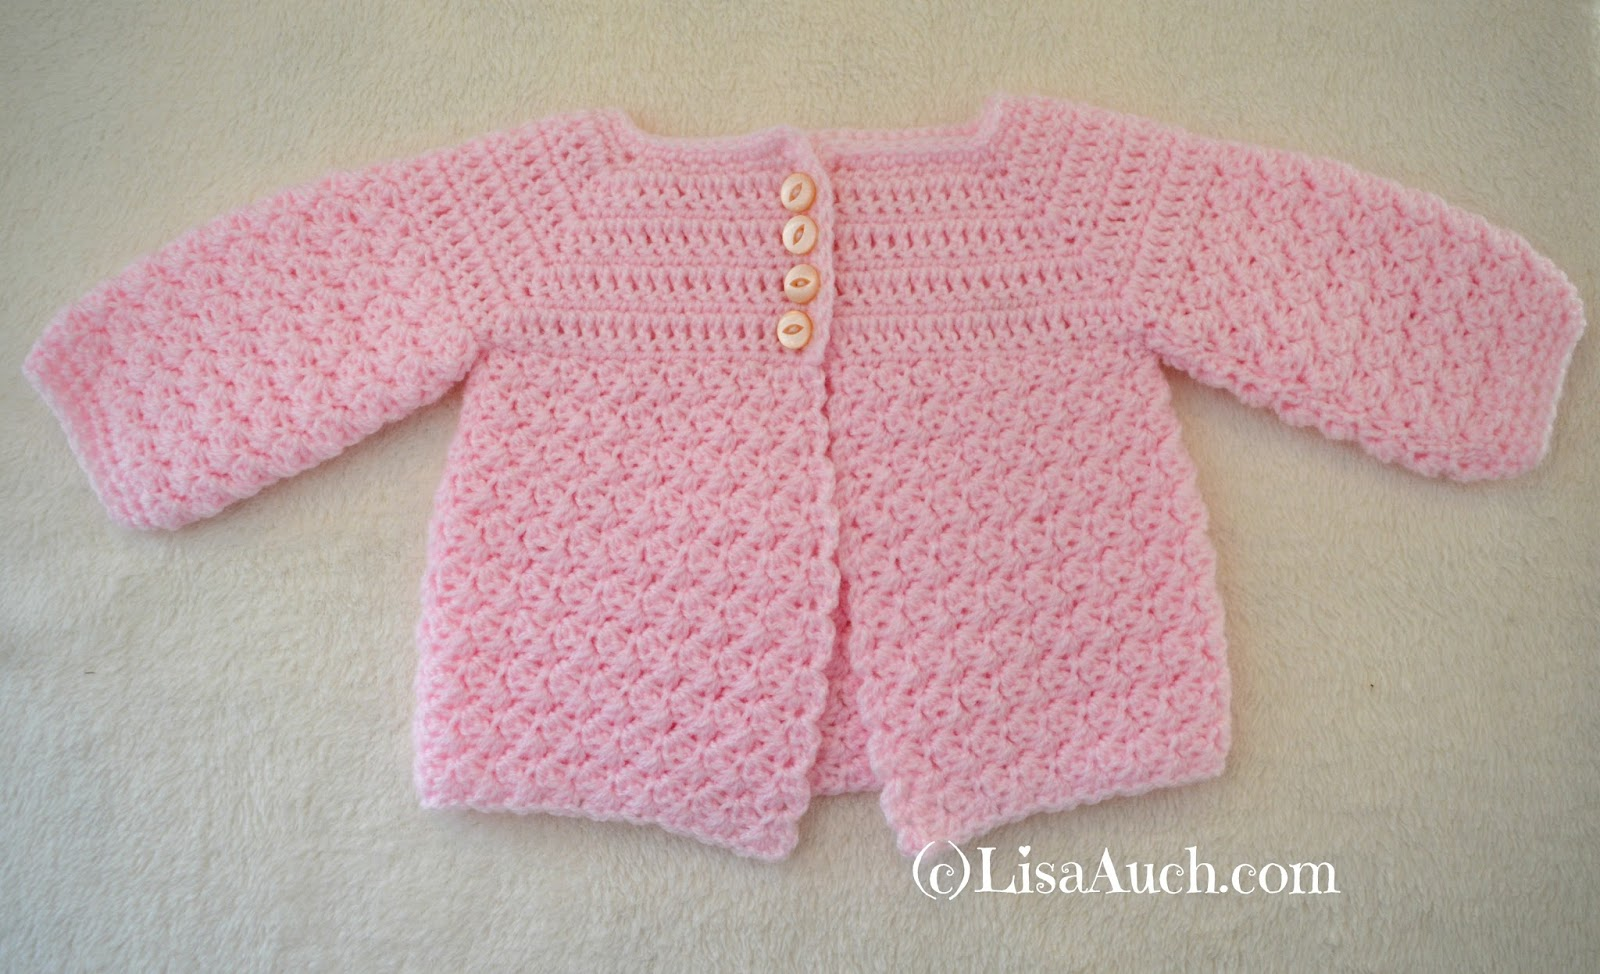 Crochet Patterns I Can Make And Sell : Crochet Baby Cardigan Easy Free Pattern FREE Crochet Patterns ...